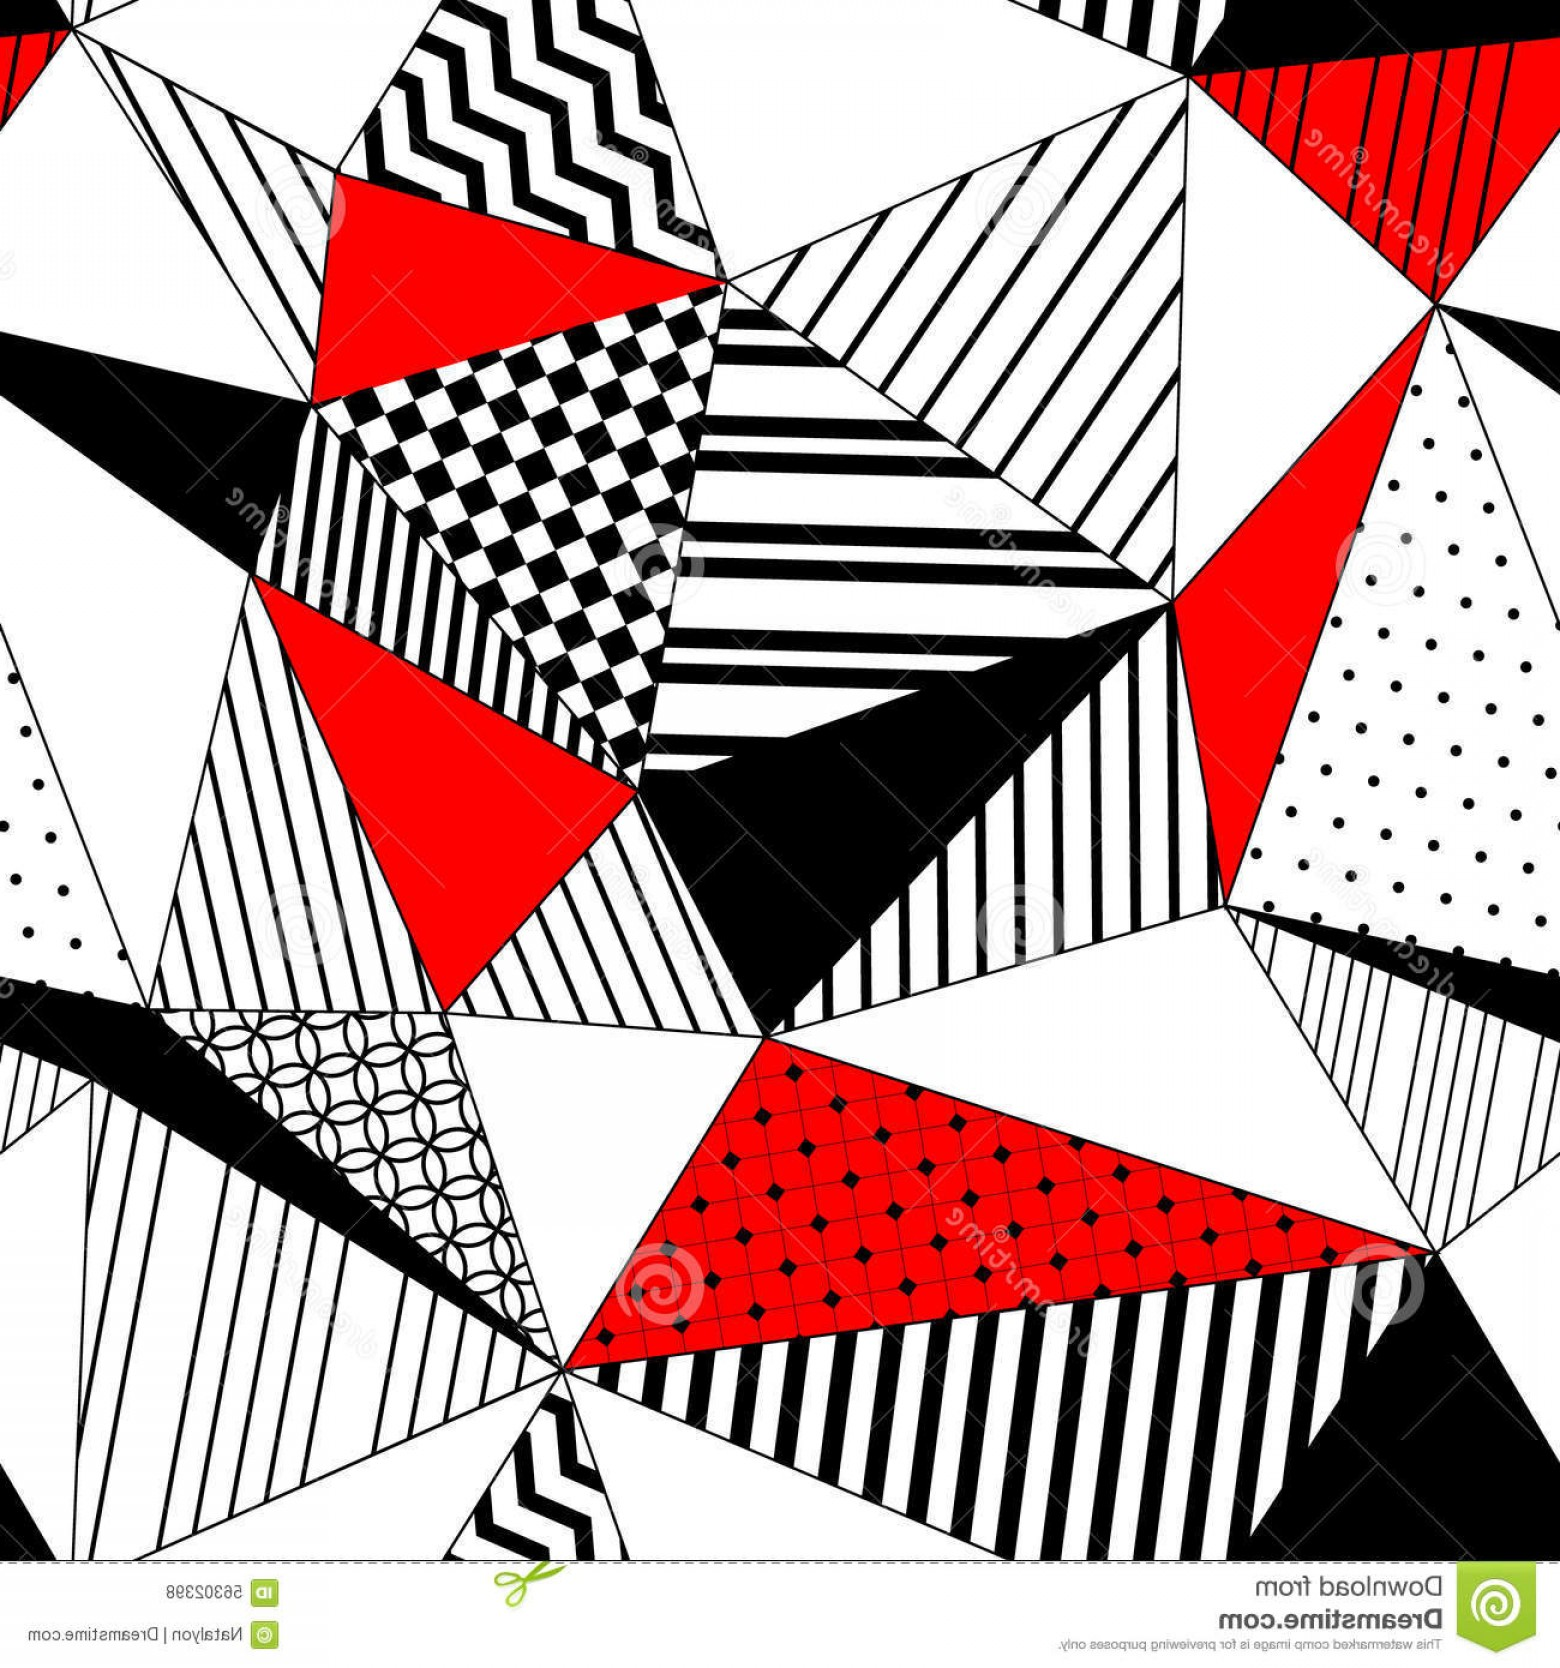 Red Black And White Vector Art: Stock Illustration Abstract Geometric Striped Triangles Seamless Pattern Black White Red Vector Background Image